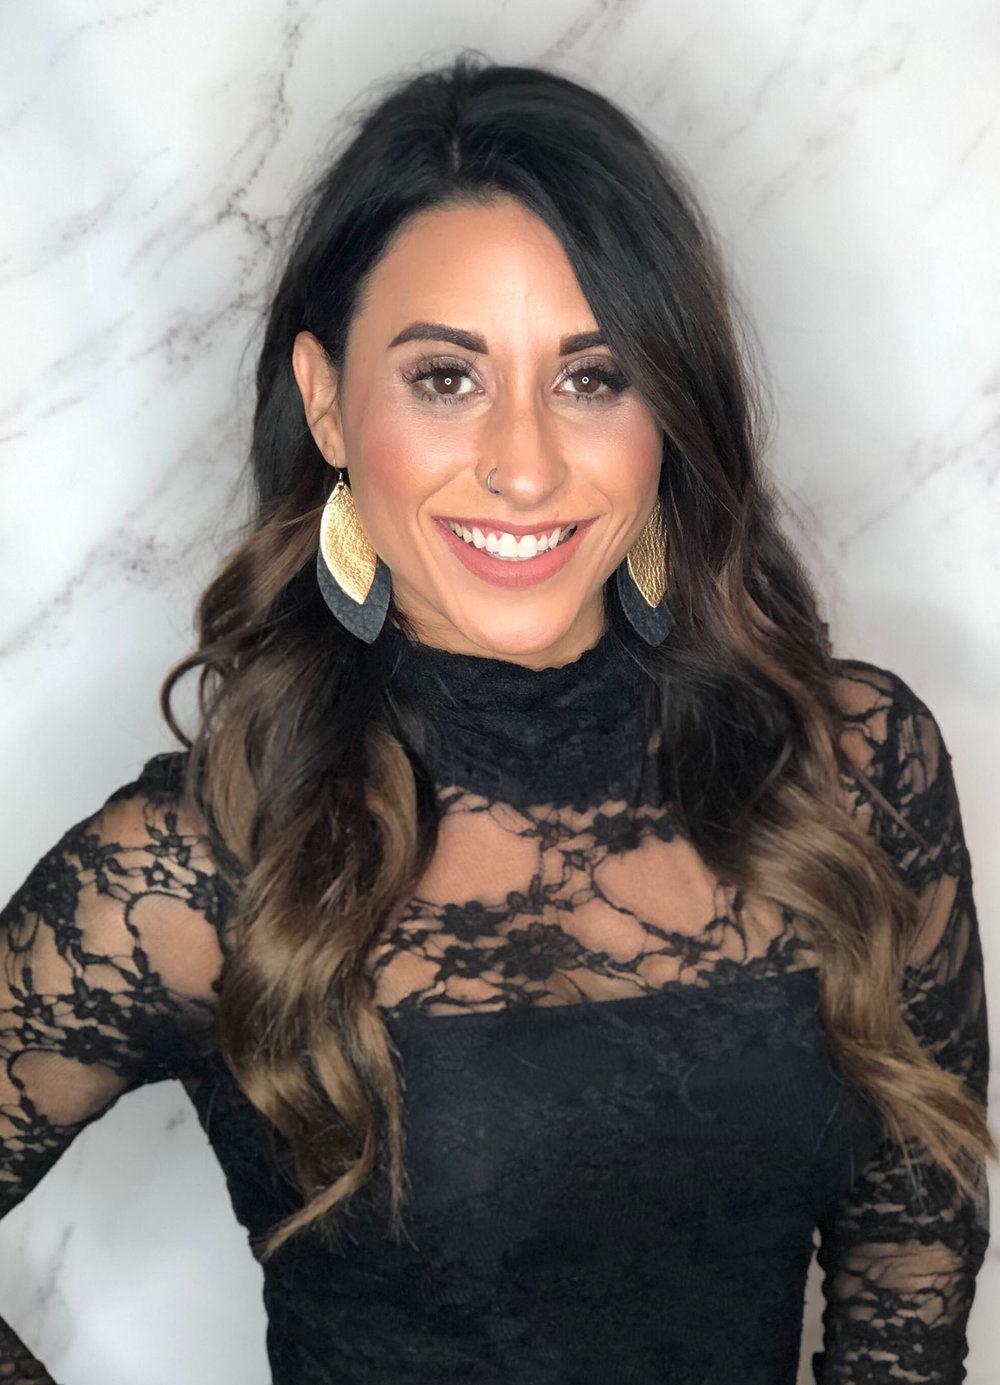 Lauren believes you should wear your hair like a crown! Specializing in keratin treatments and fresh cuts, she also loves using balayage and dimension adding techniques to boost dark hair, as well as fun bright pieces to maximize blondes. She'll create that crown with a fun updo or playful curls.